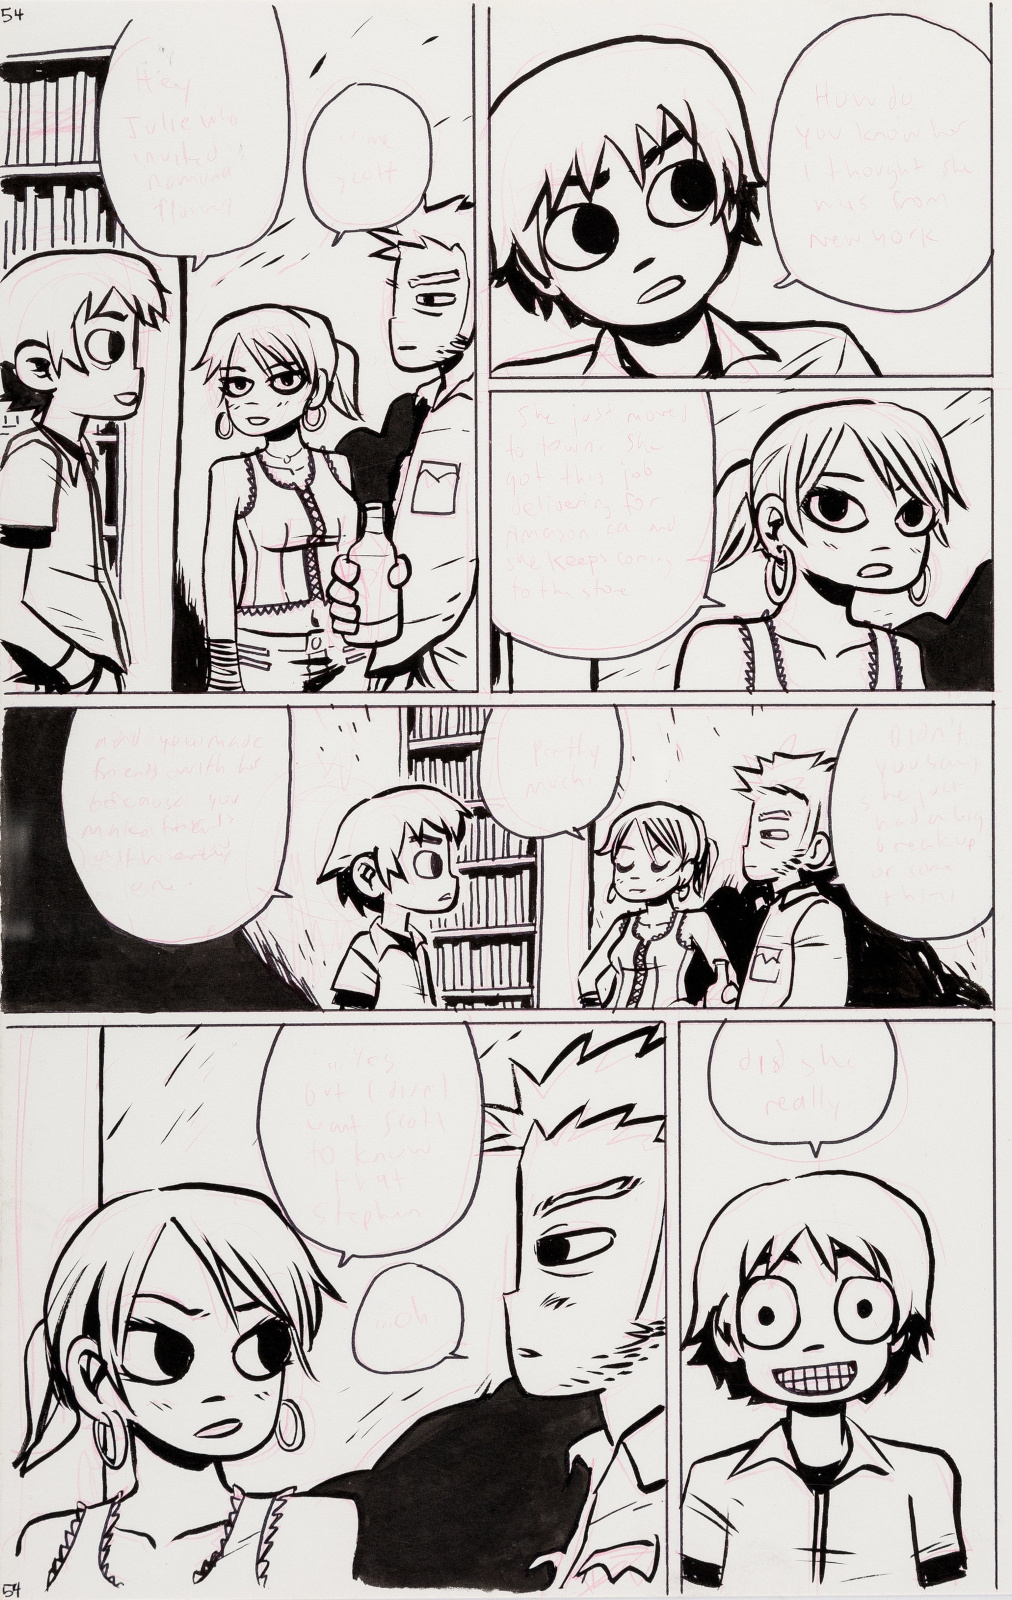 Scott Pilgrim issue 1 page 62 by Bryan Lee OMalley